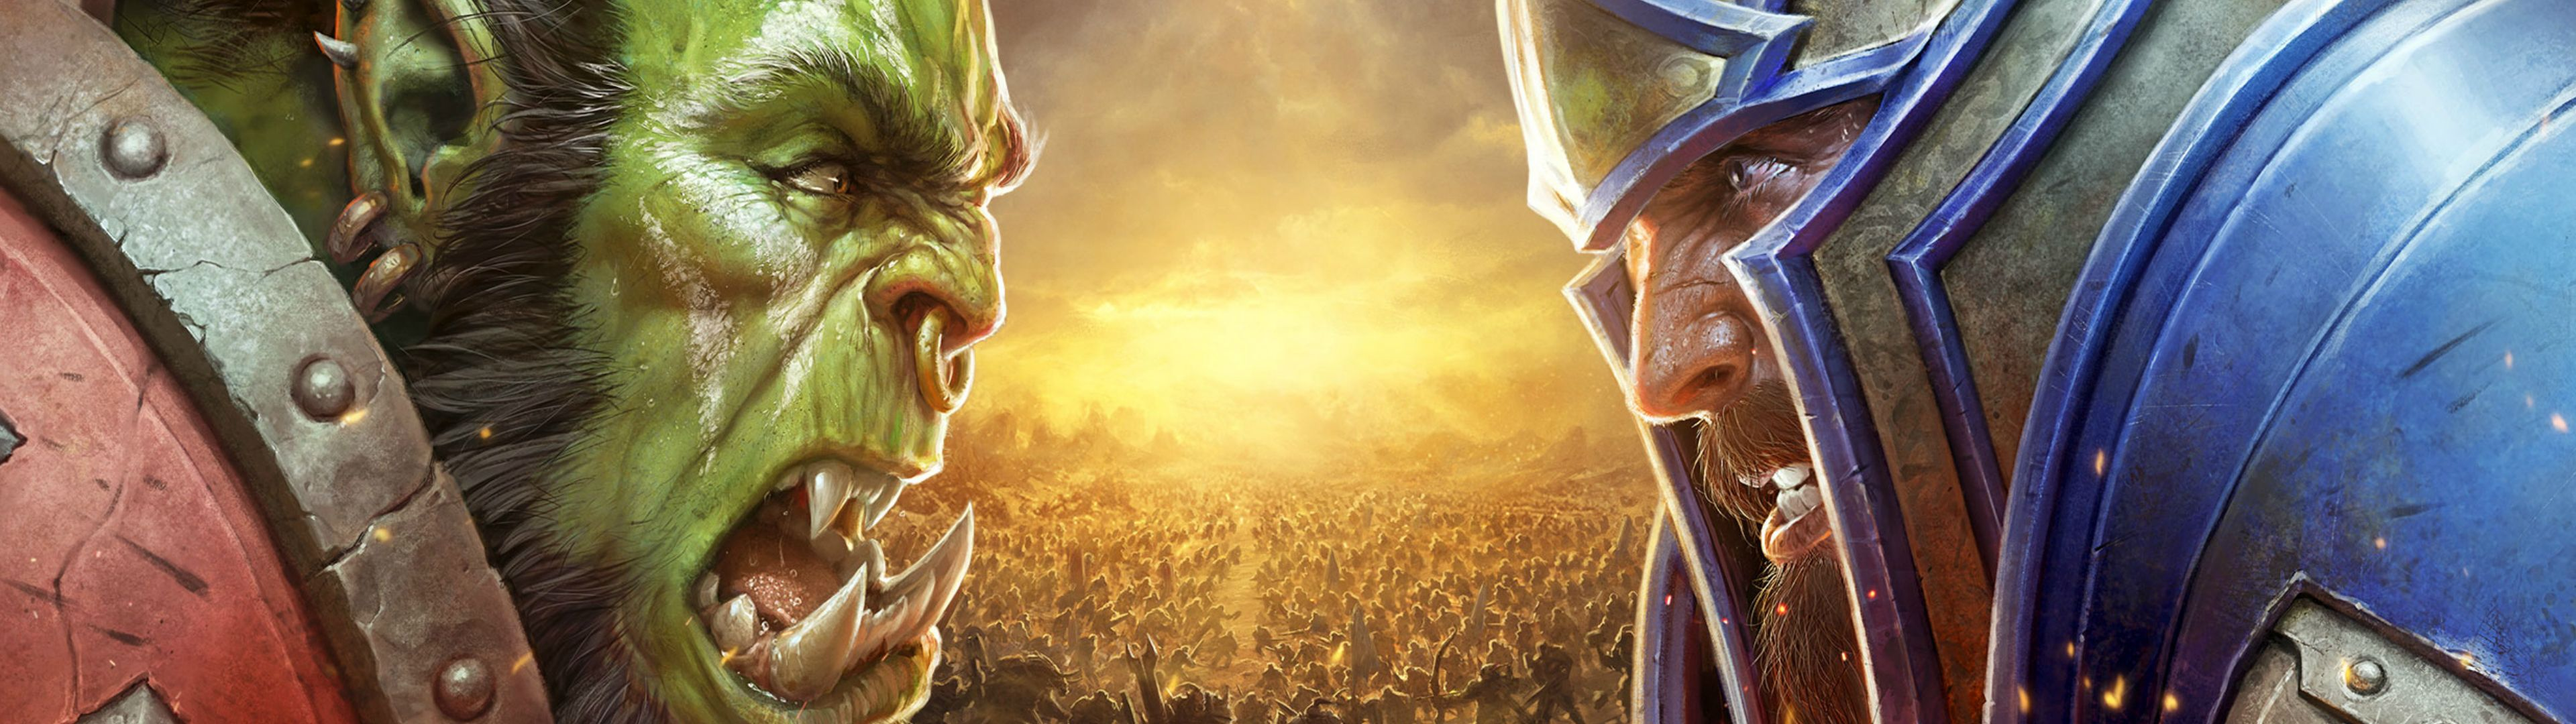 Bfa Dual Monitor Wallpaper 3840x1080 Worldofwarcraft Blizzard Hearthstone Wow Warcr Dual Monitor Wallpaper World Of Warcraft Wallpaper 3840x1080 Wallpaper